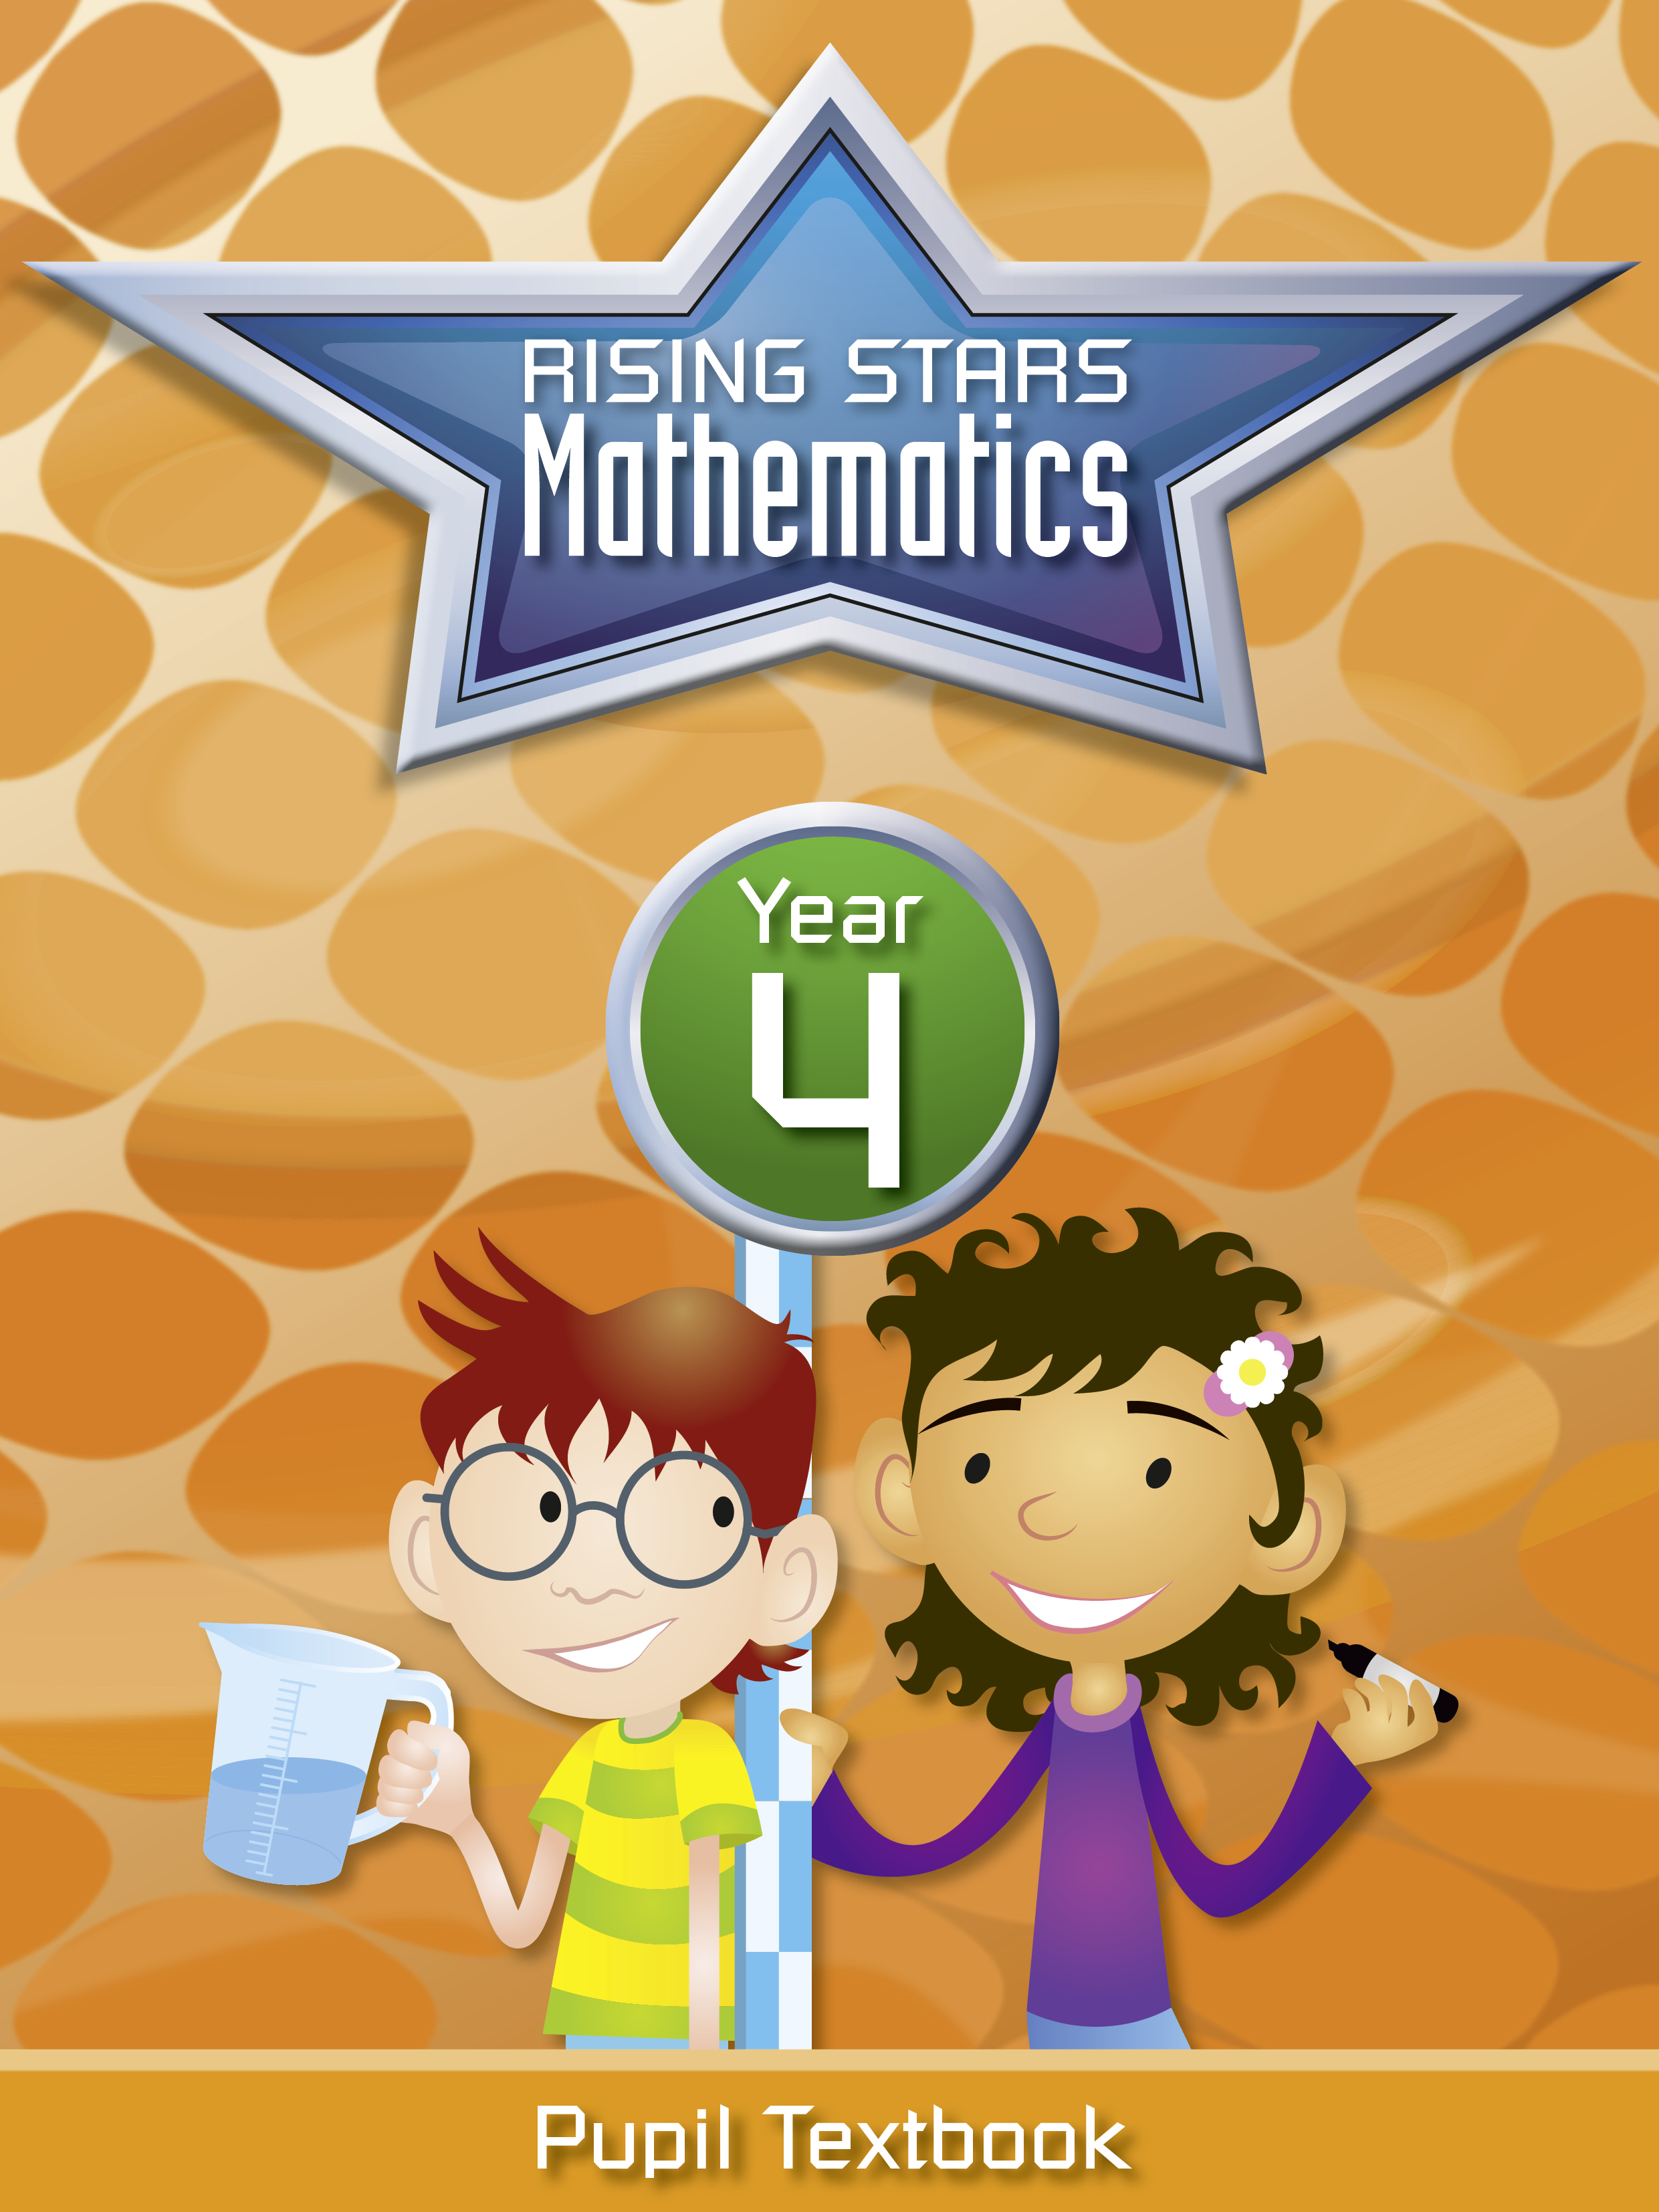 Rising Stars Mathematics free sample